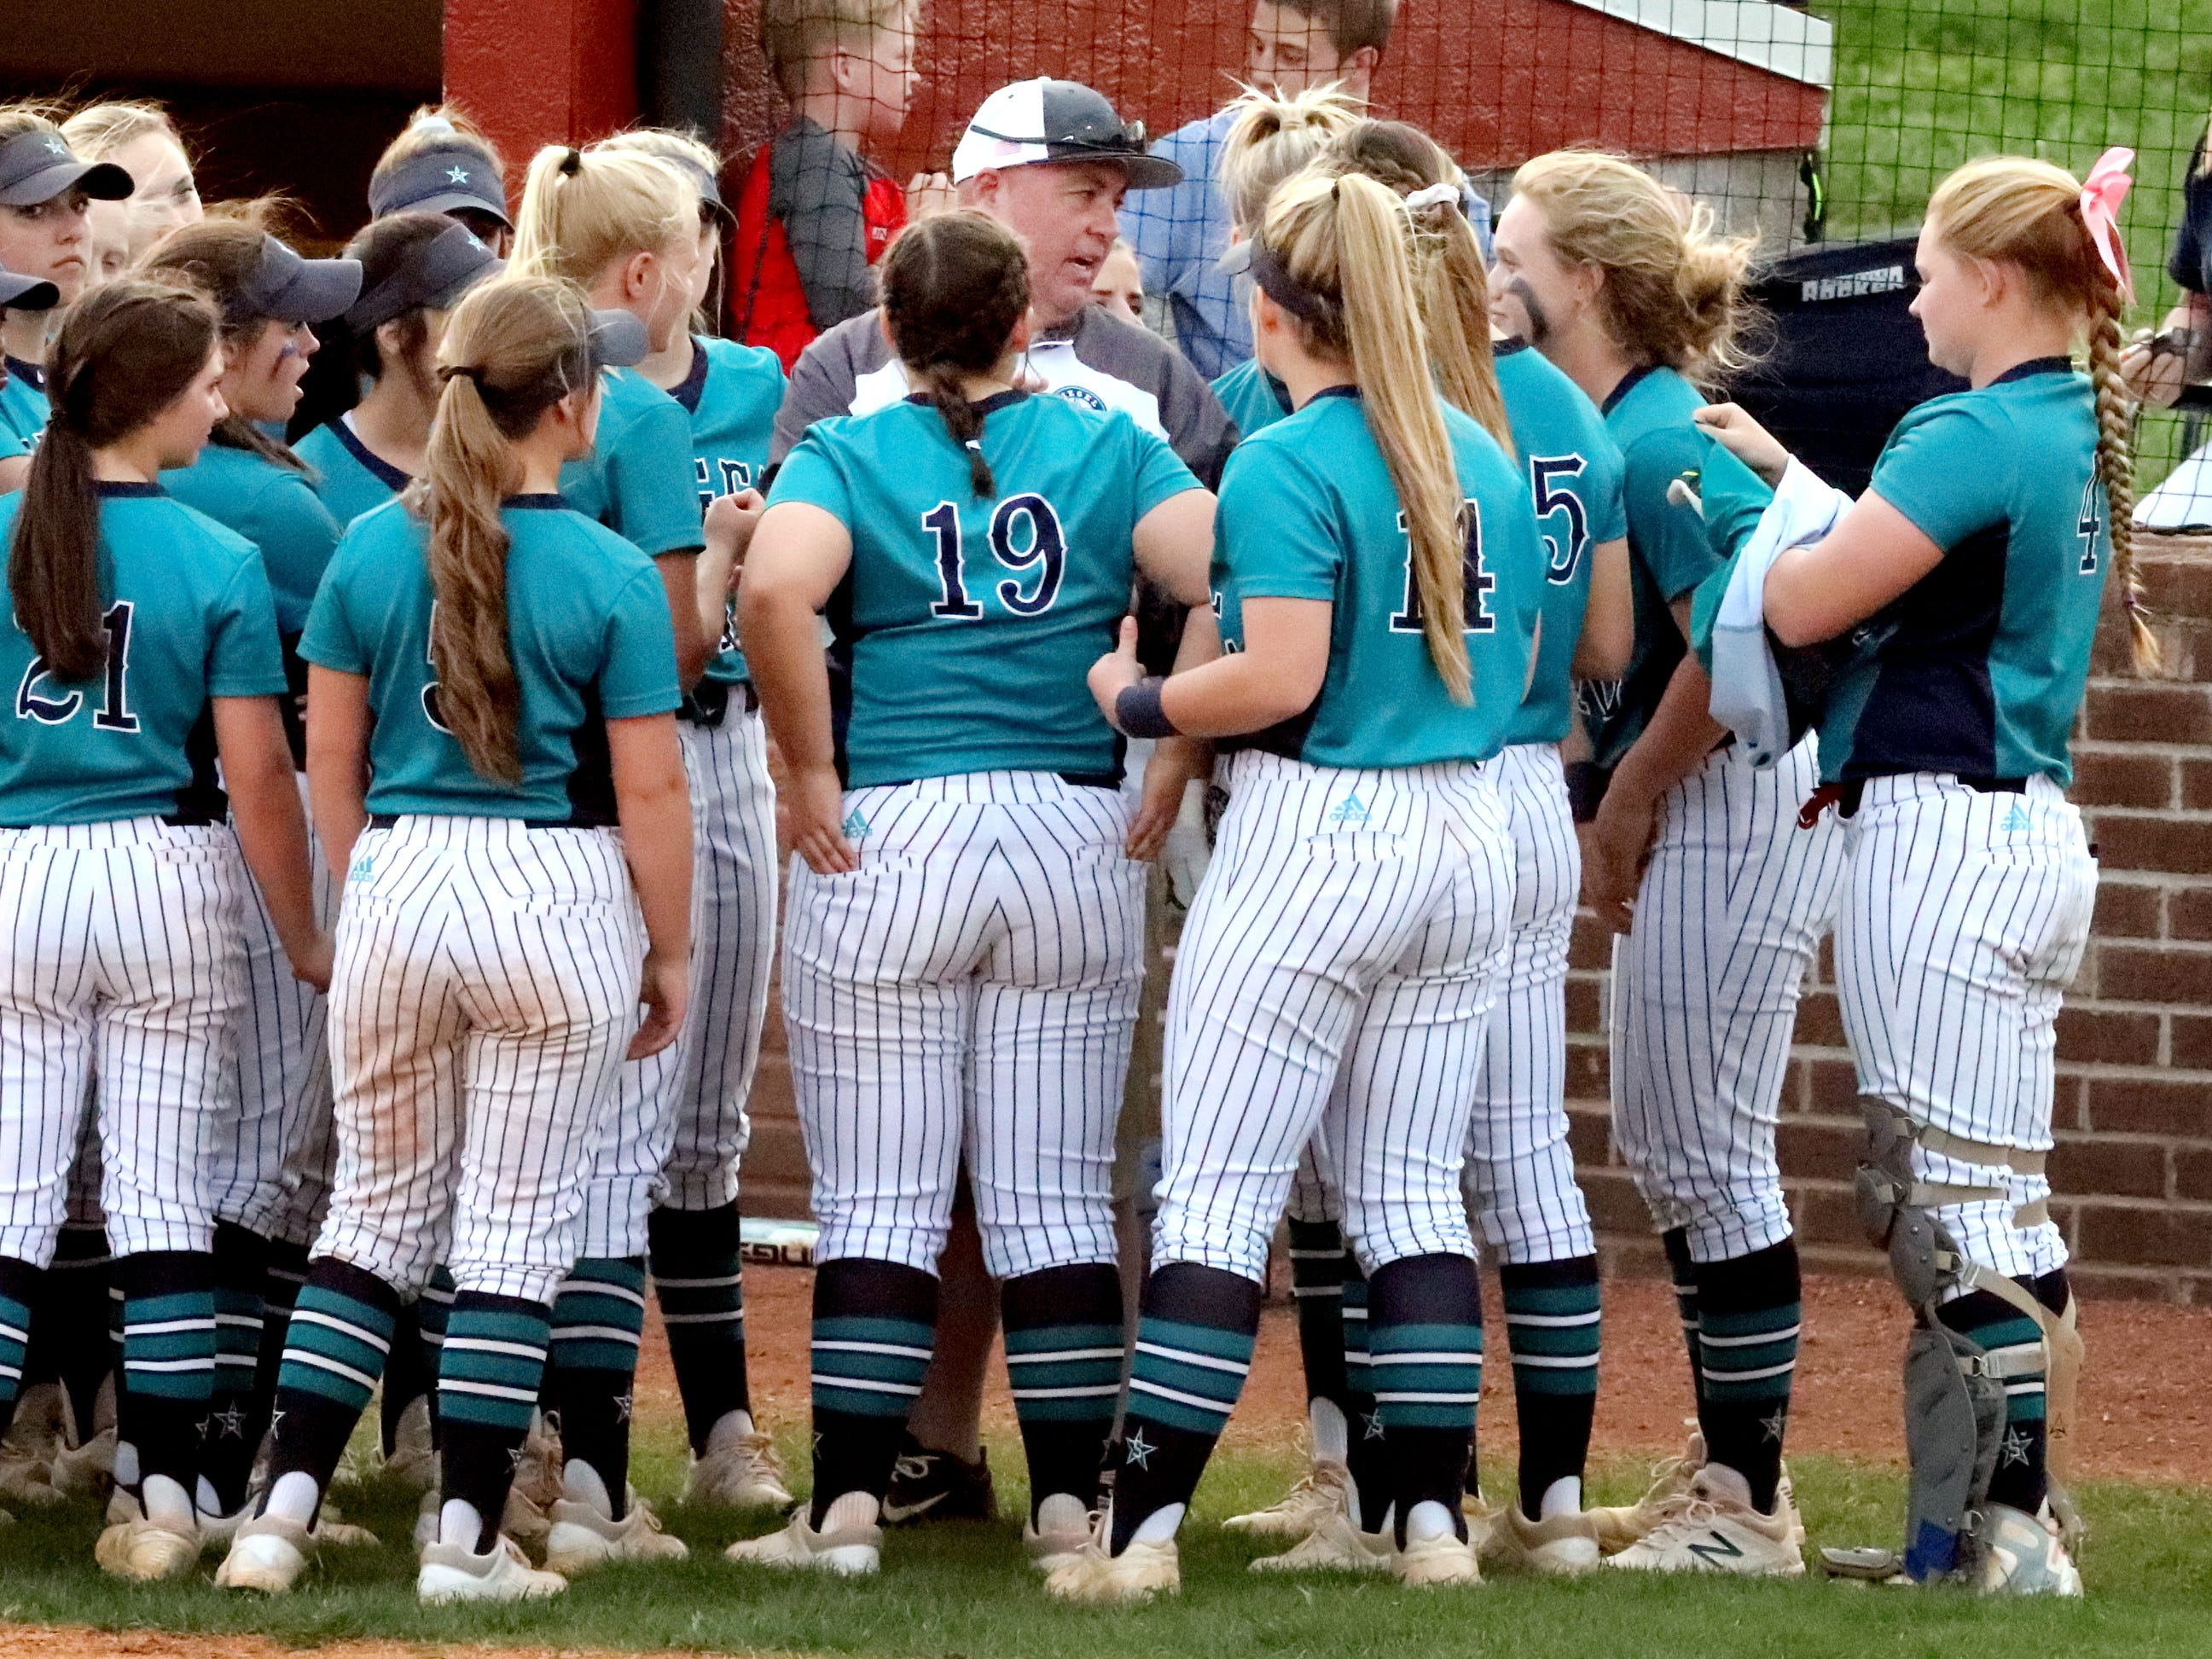 Siegel's head coach Shawn Middleton talks with players before the game against Riverdale on Thursday April 11, 2019, at Riverdale.